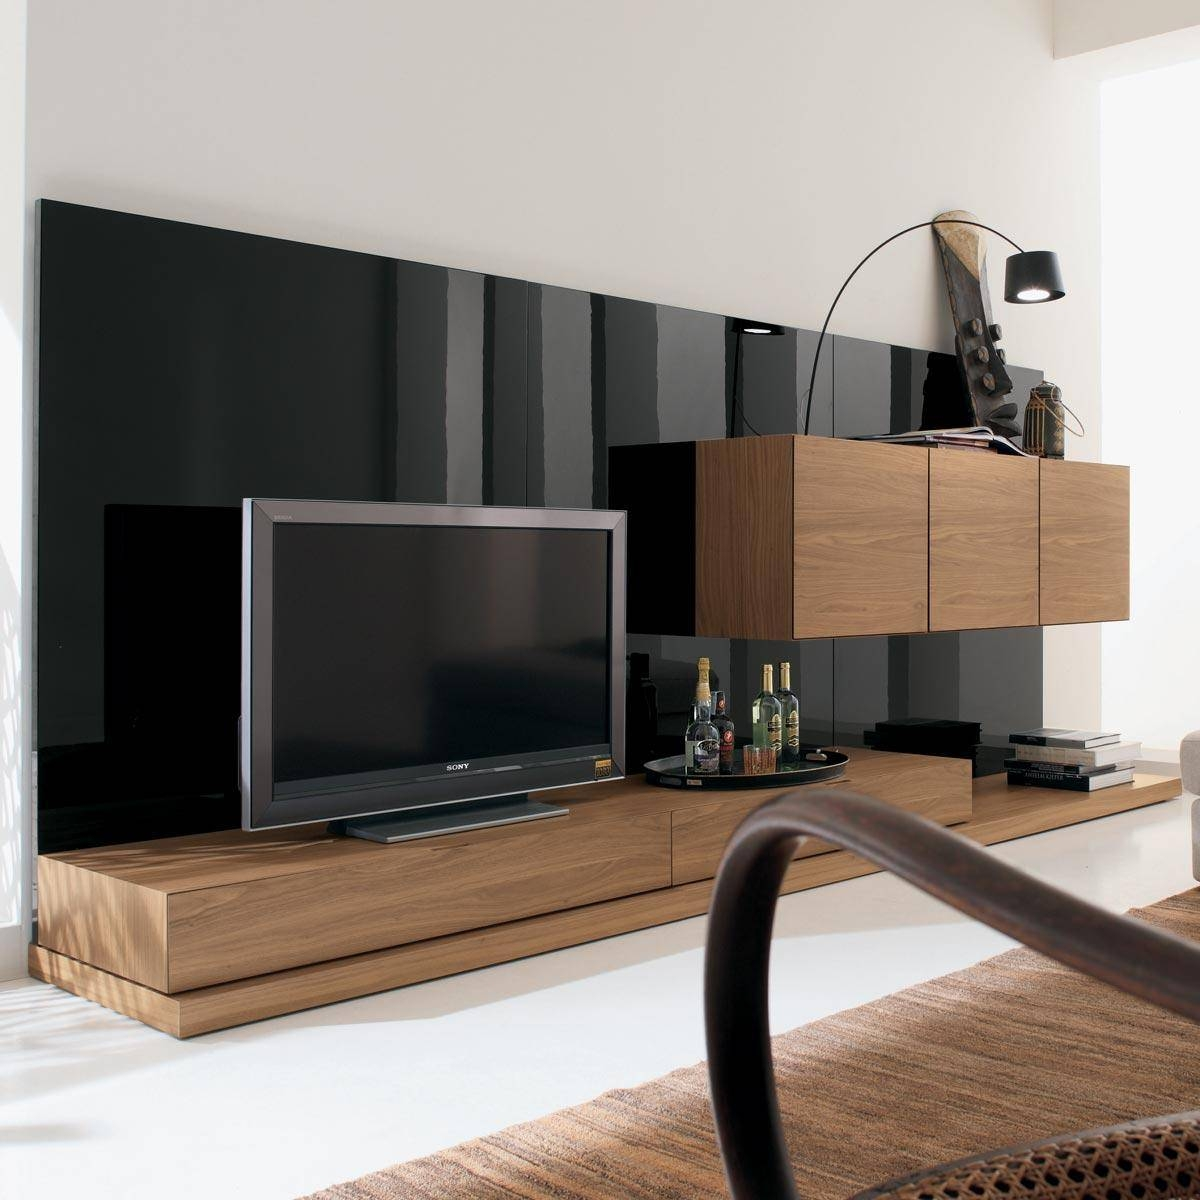 Choosing A Tv Stand That Will Suit Your Home – La Furniture Blog Within Telly Tv Stands (View 4 of 15)